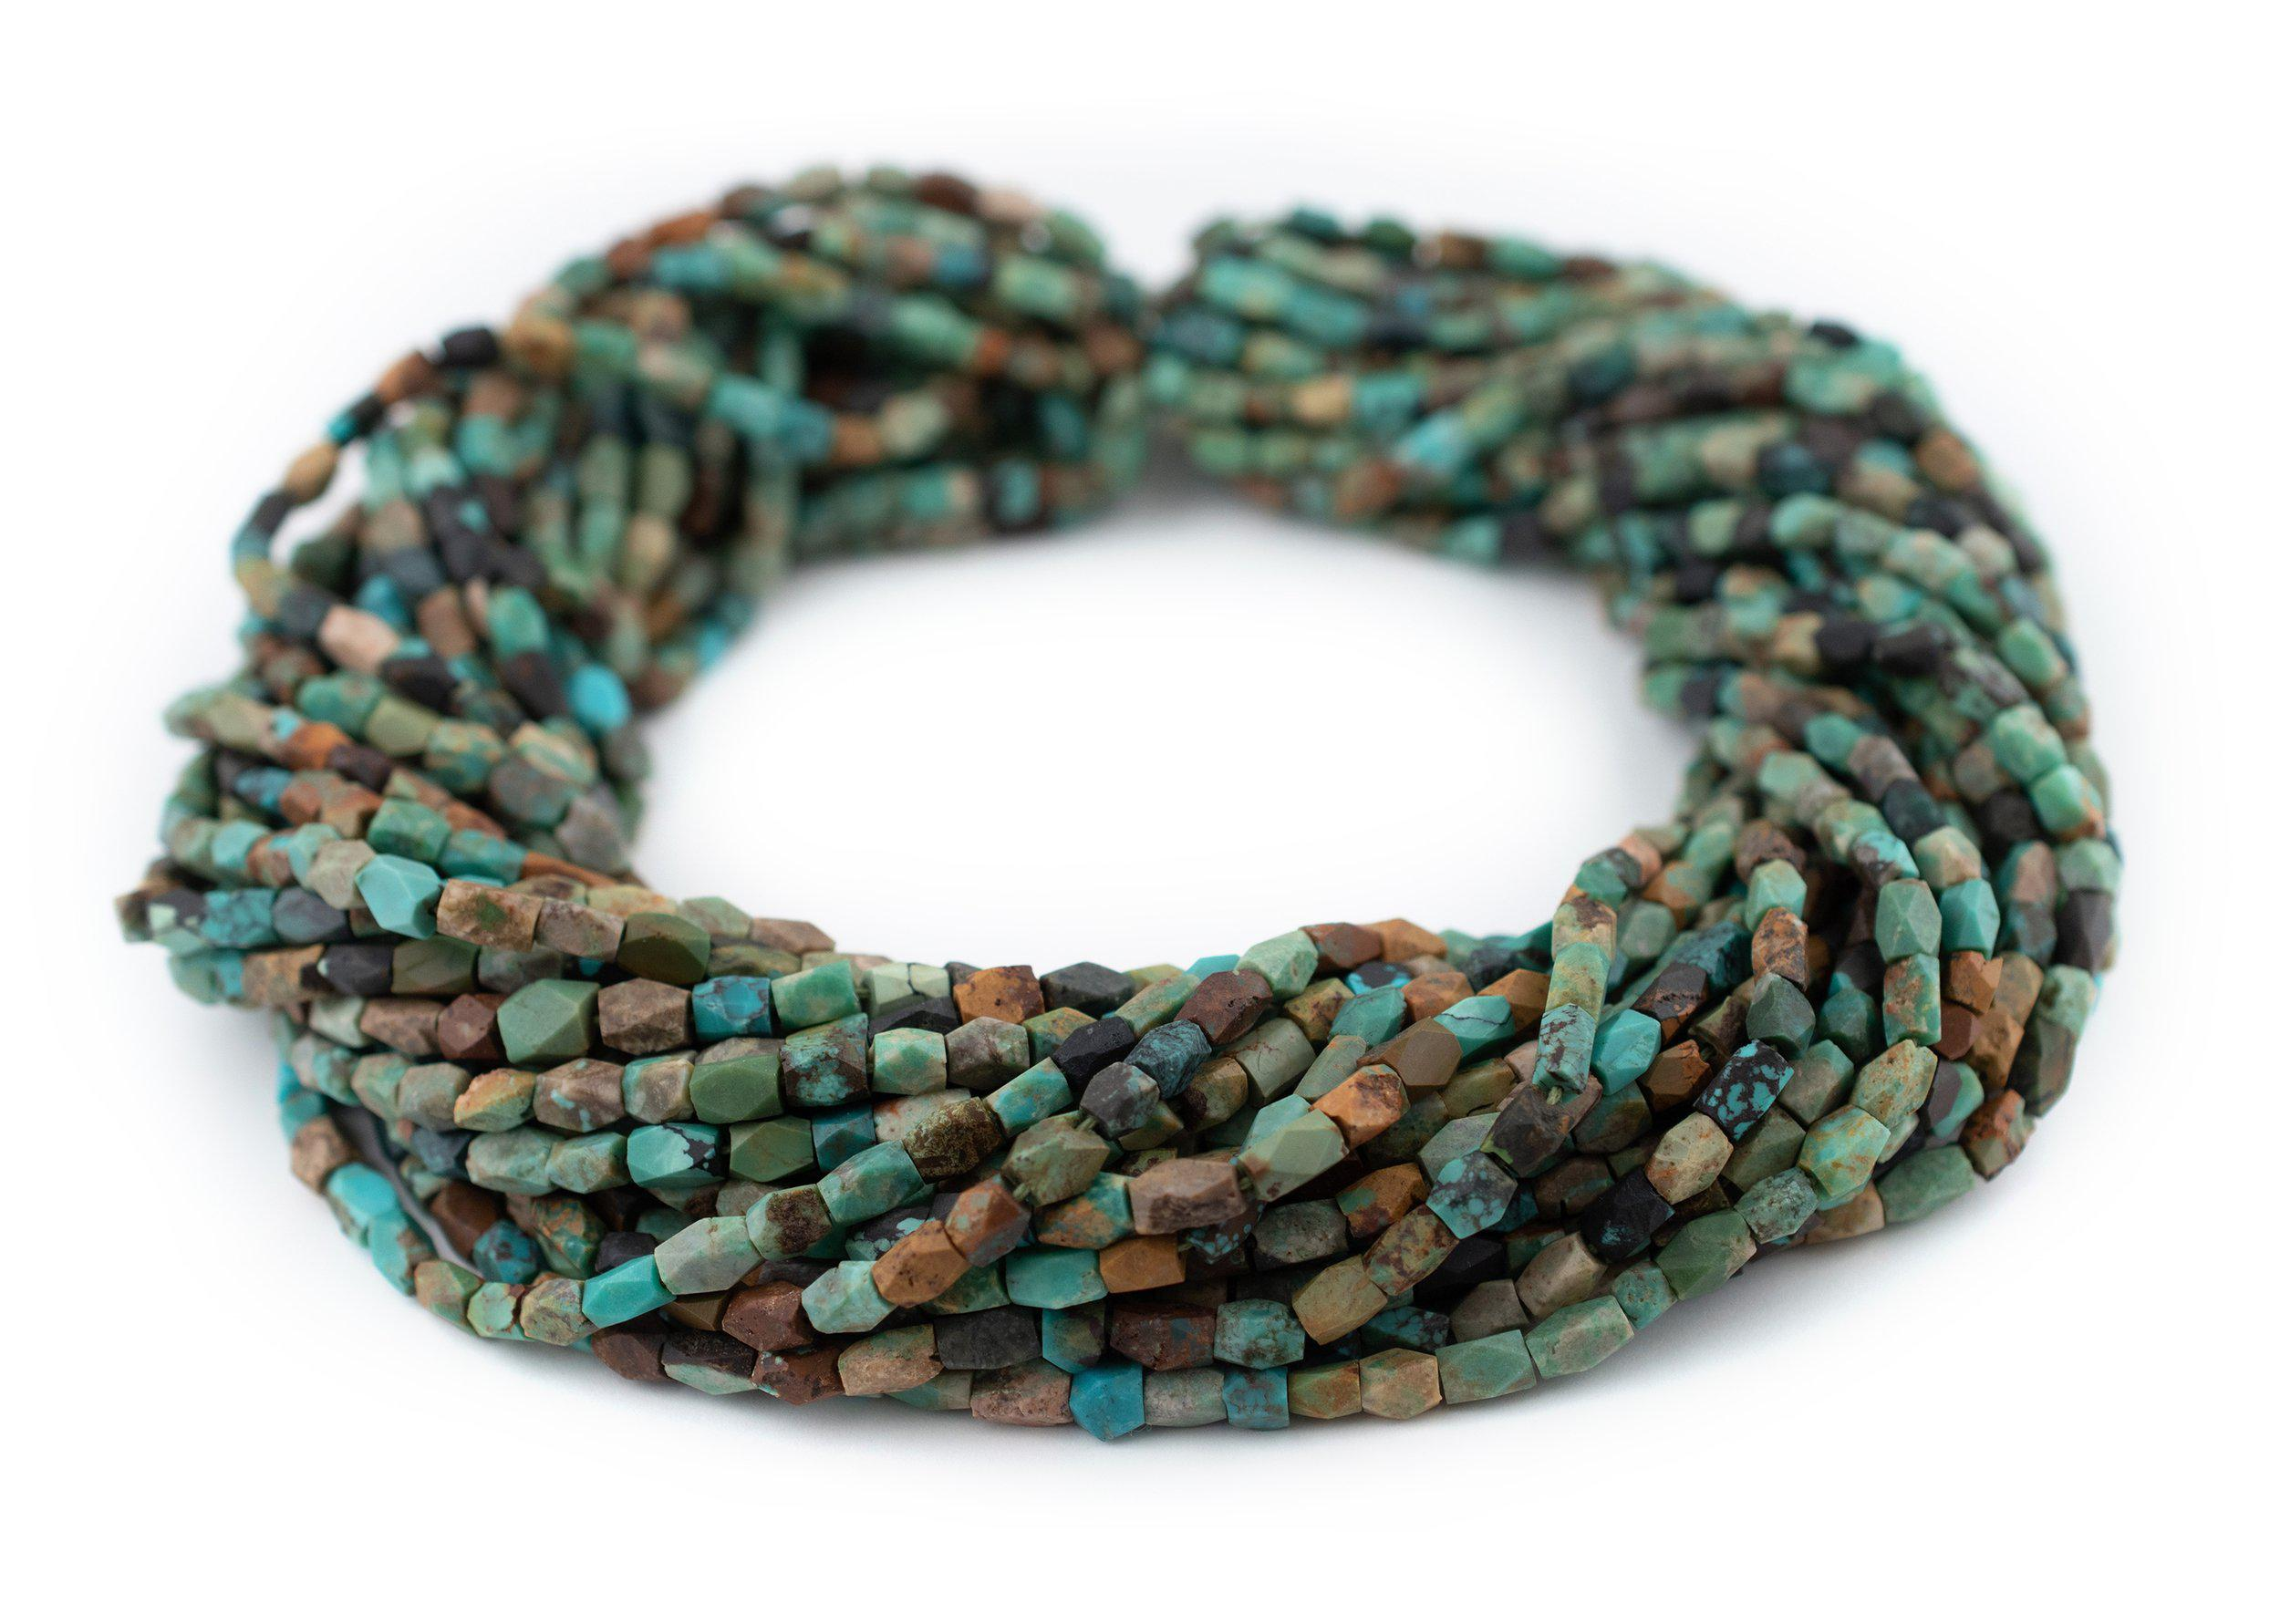 Tiny Turquoise Stone Saucer Beads 3mm Afghanistan Green Gemstone 15 Inch Strand